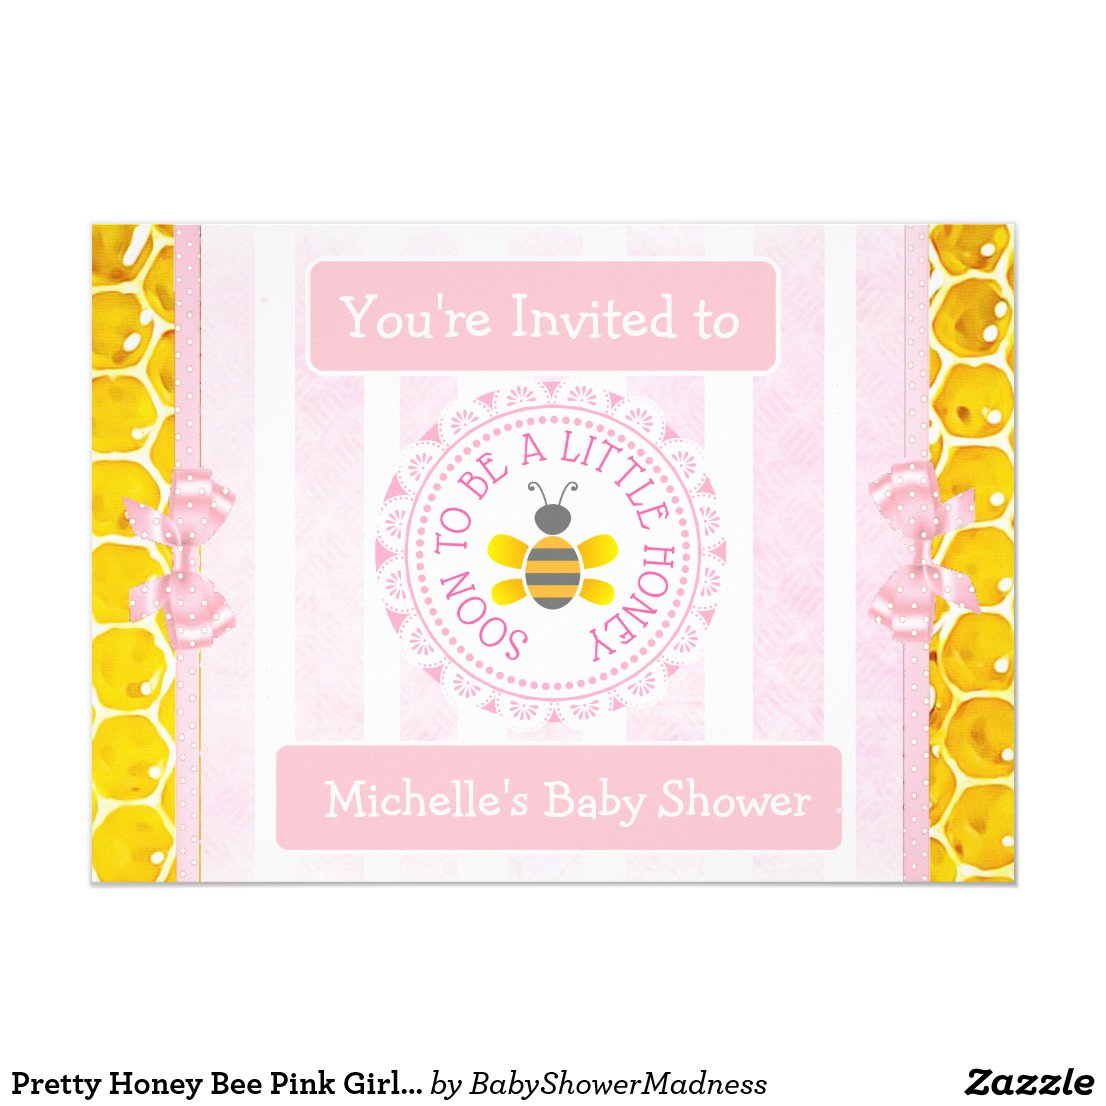 Pretty Honey Bee Pink Girl's Baby Shower Invites